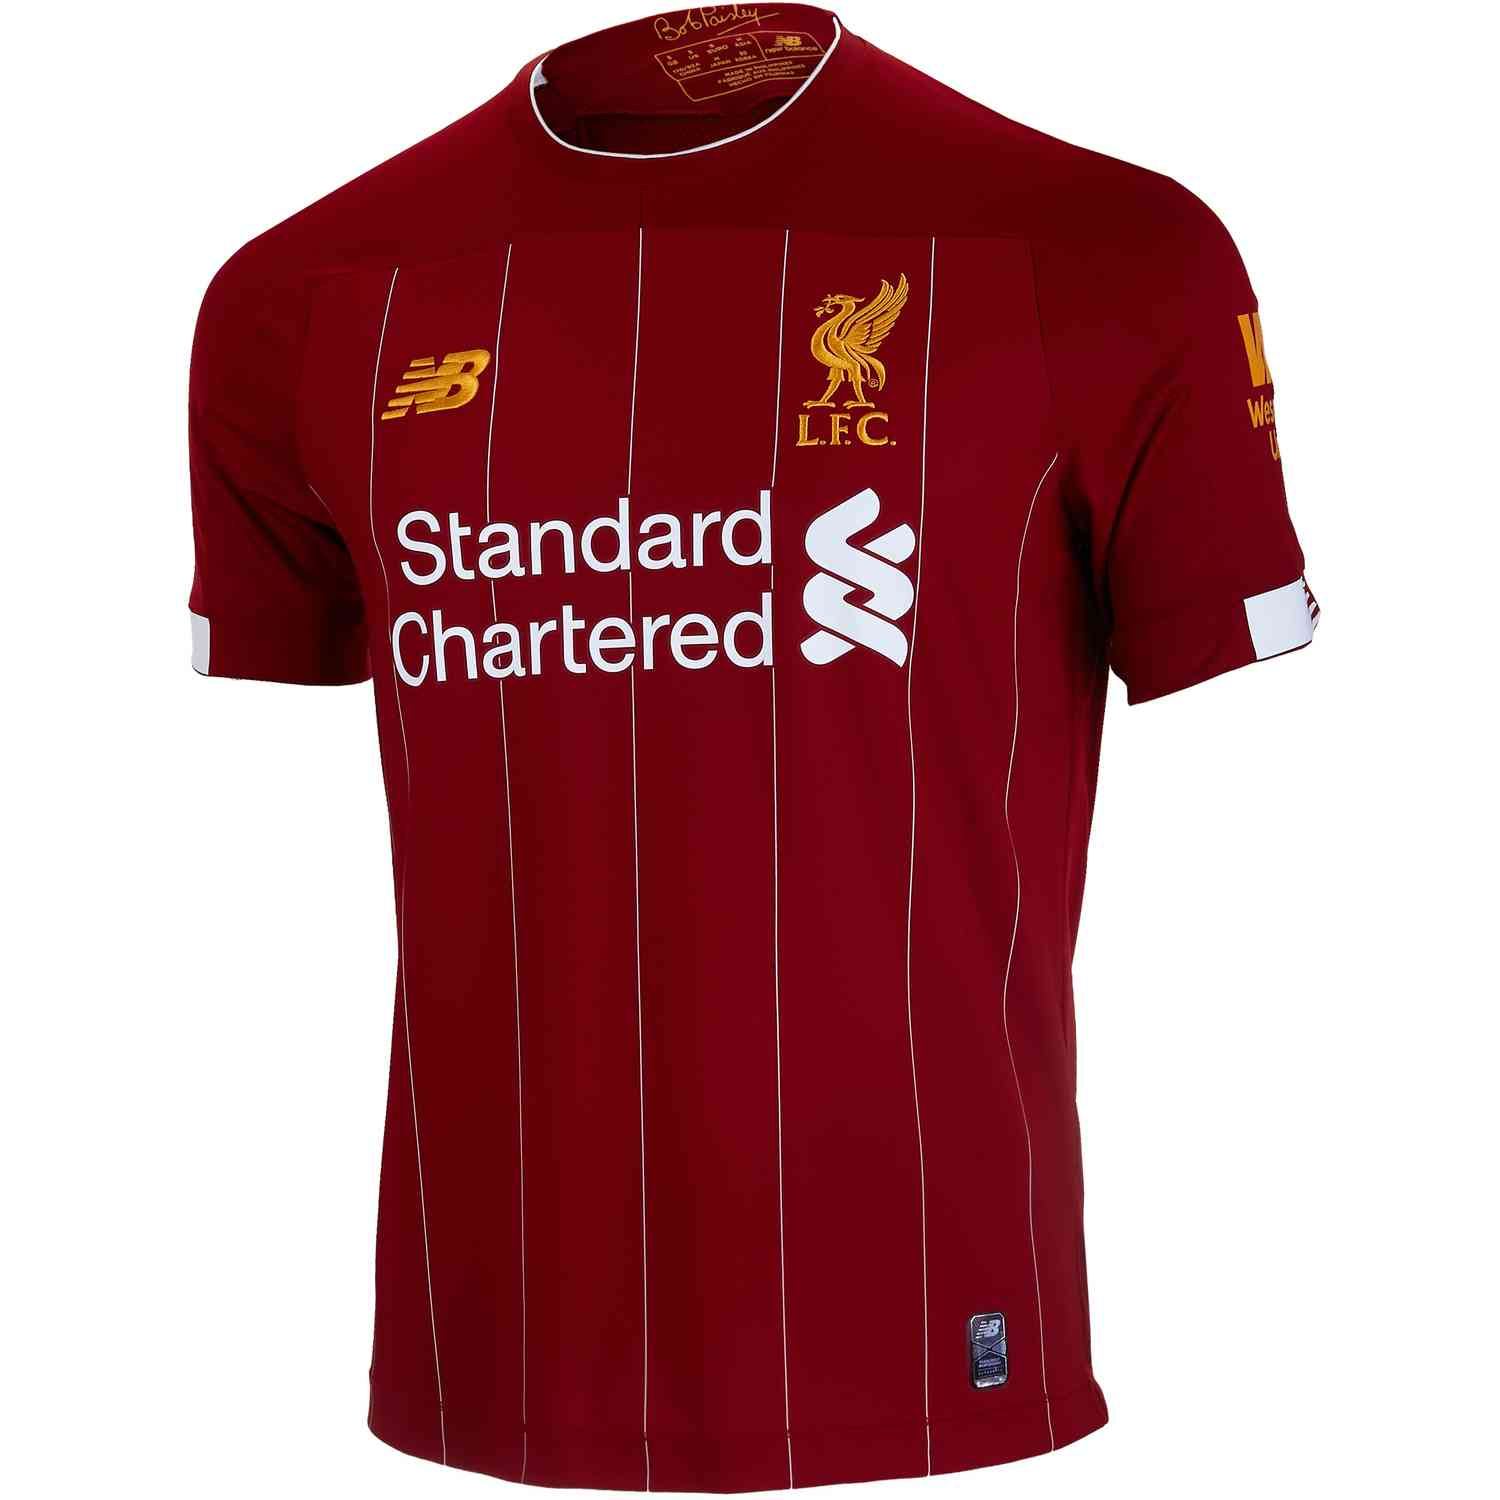 timeless design 83dbc 4fc15 2019/20 New Balance Liverpool Home Jersey - SoccerPro